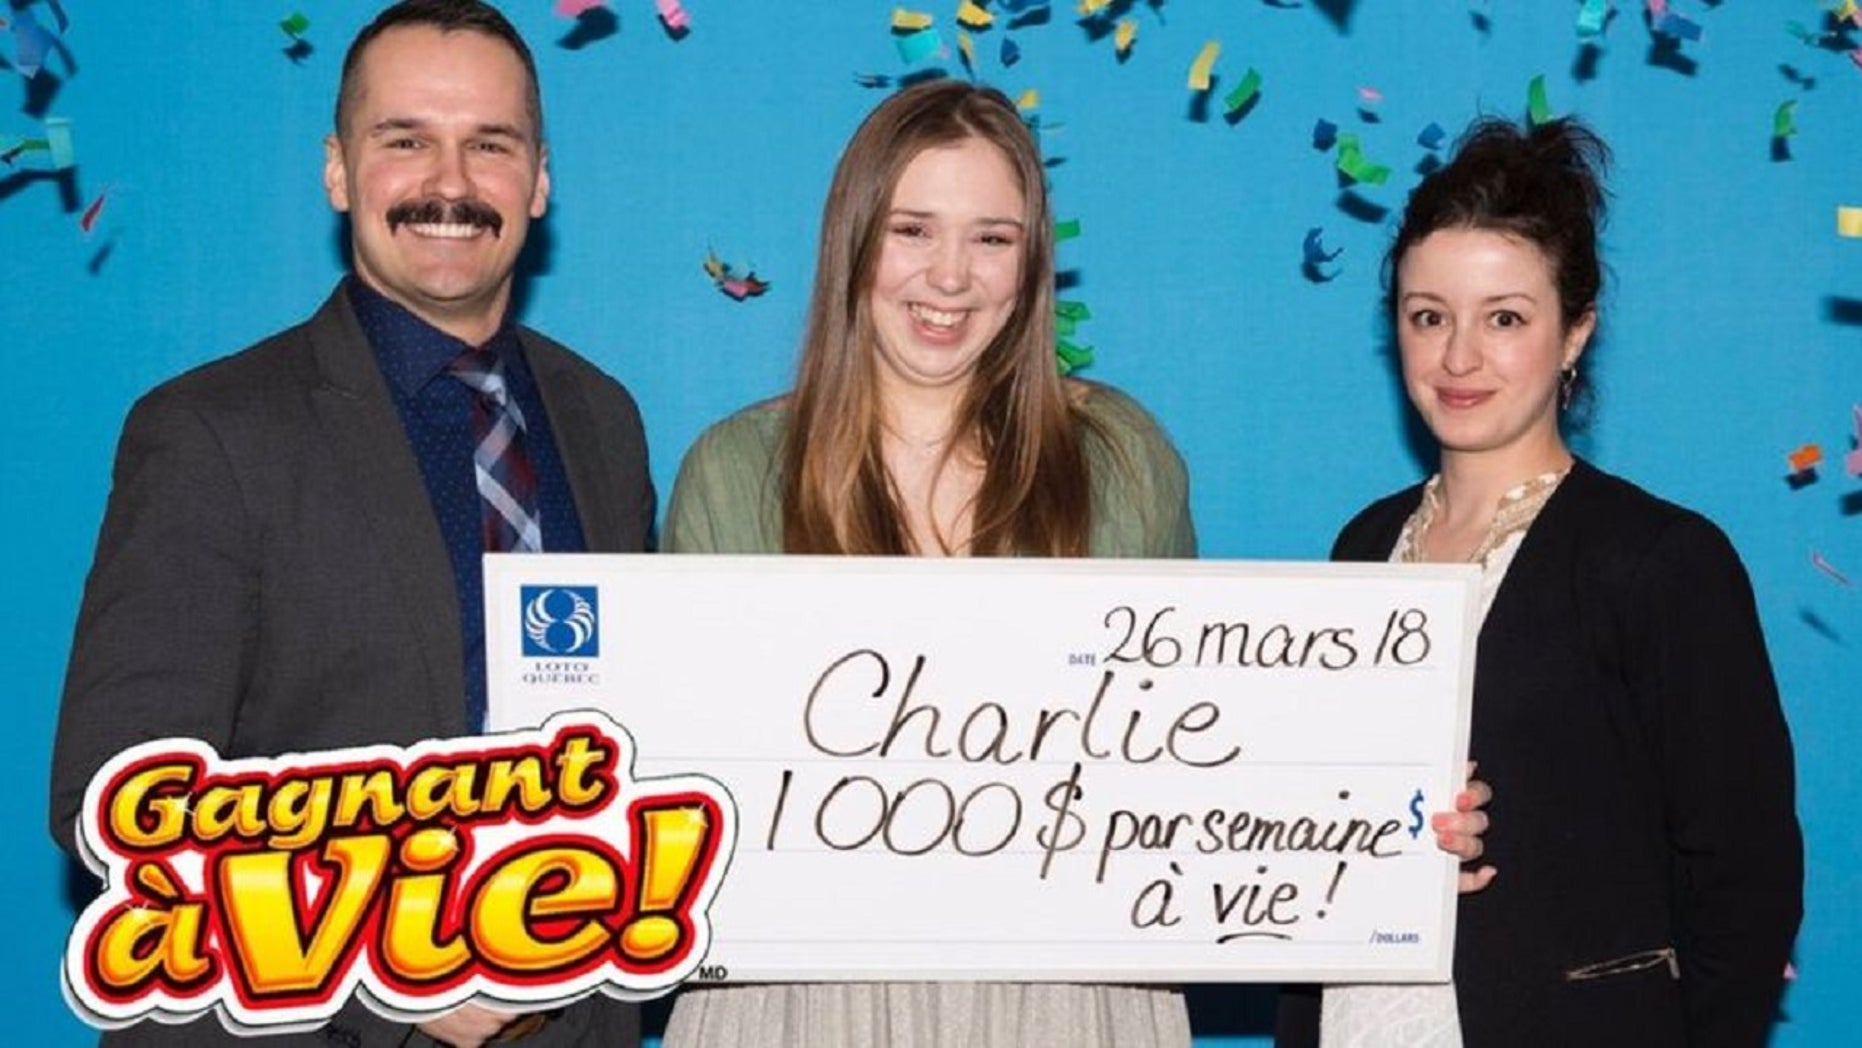 Charlie Lagarde celebrated her 18th birthday with a lotto ticket that turned out to be a gift worth $1,000 a week for life.